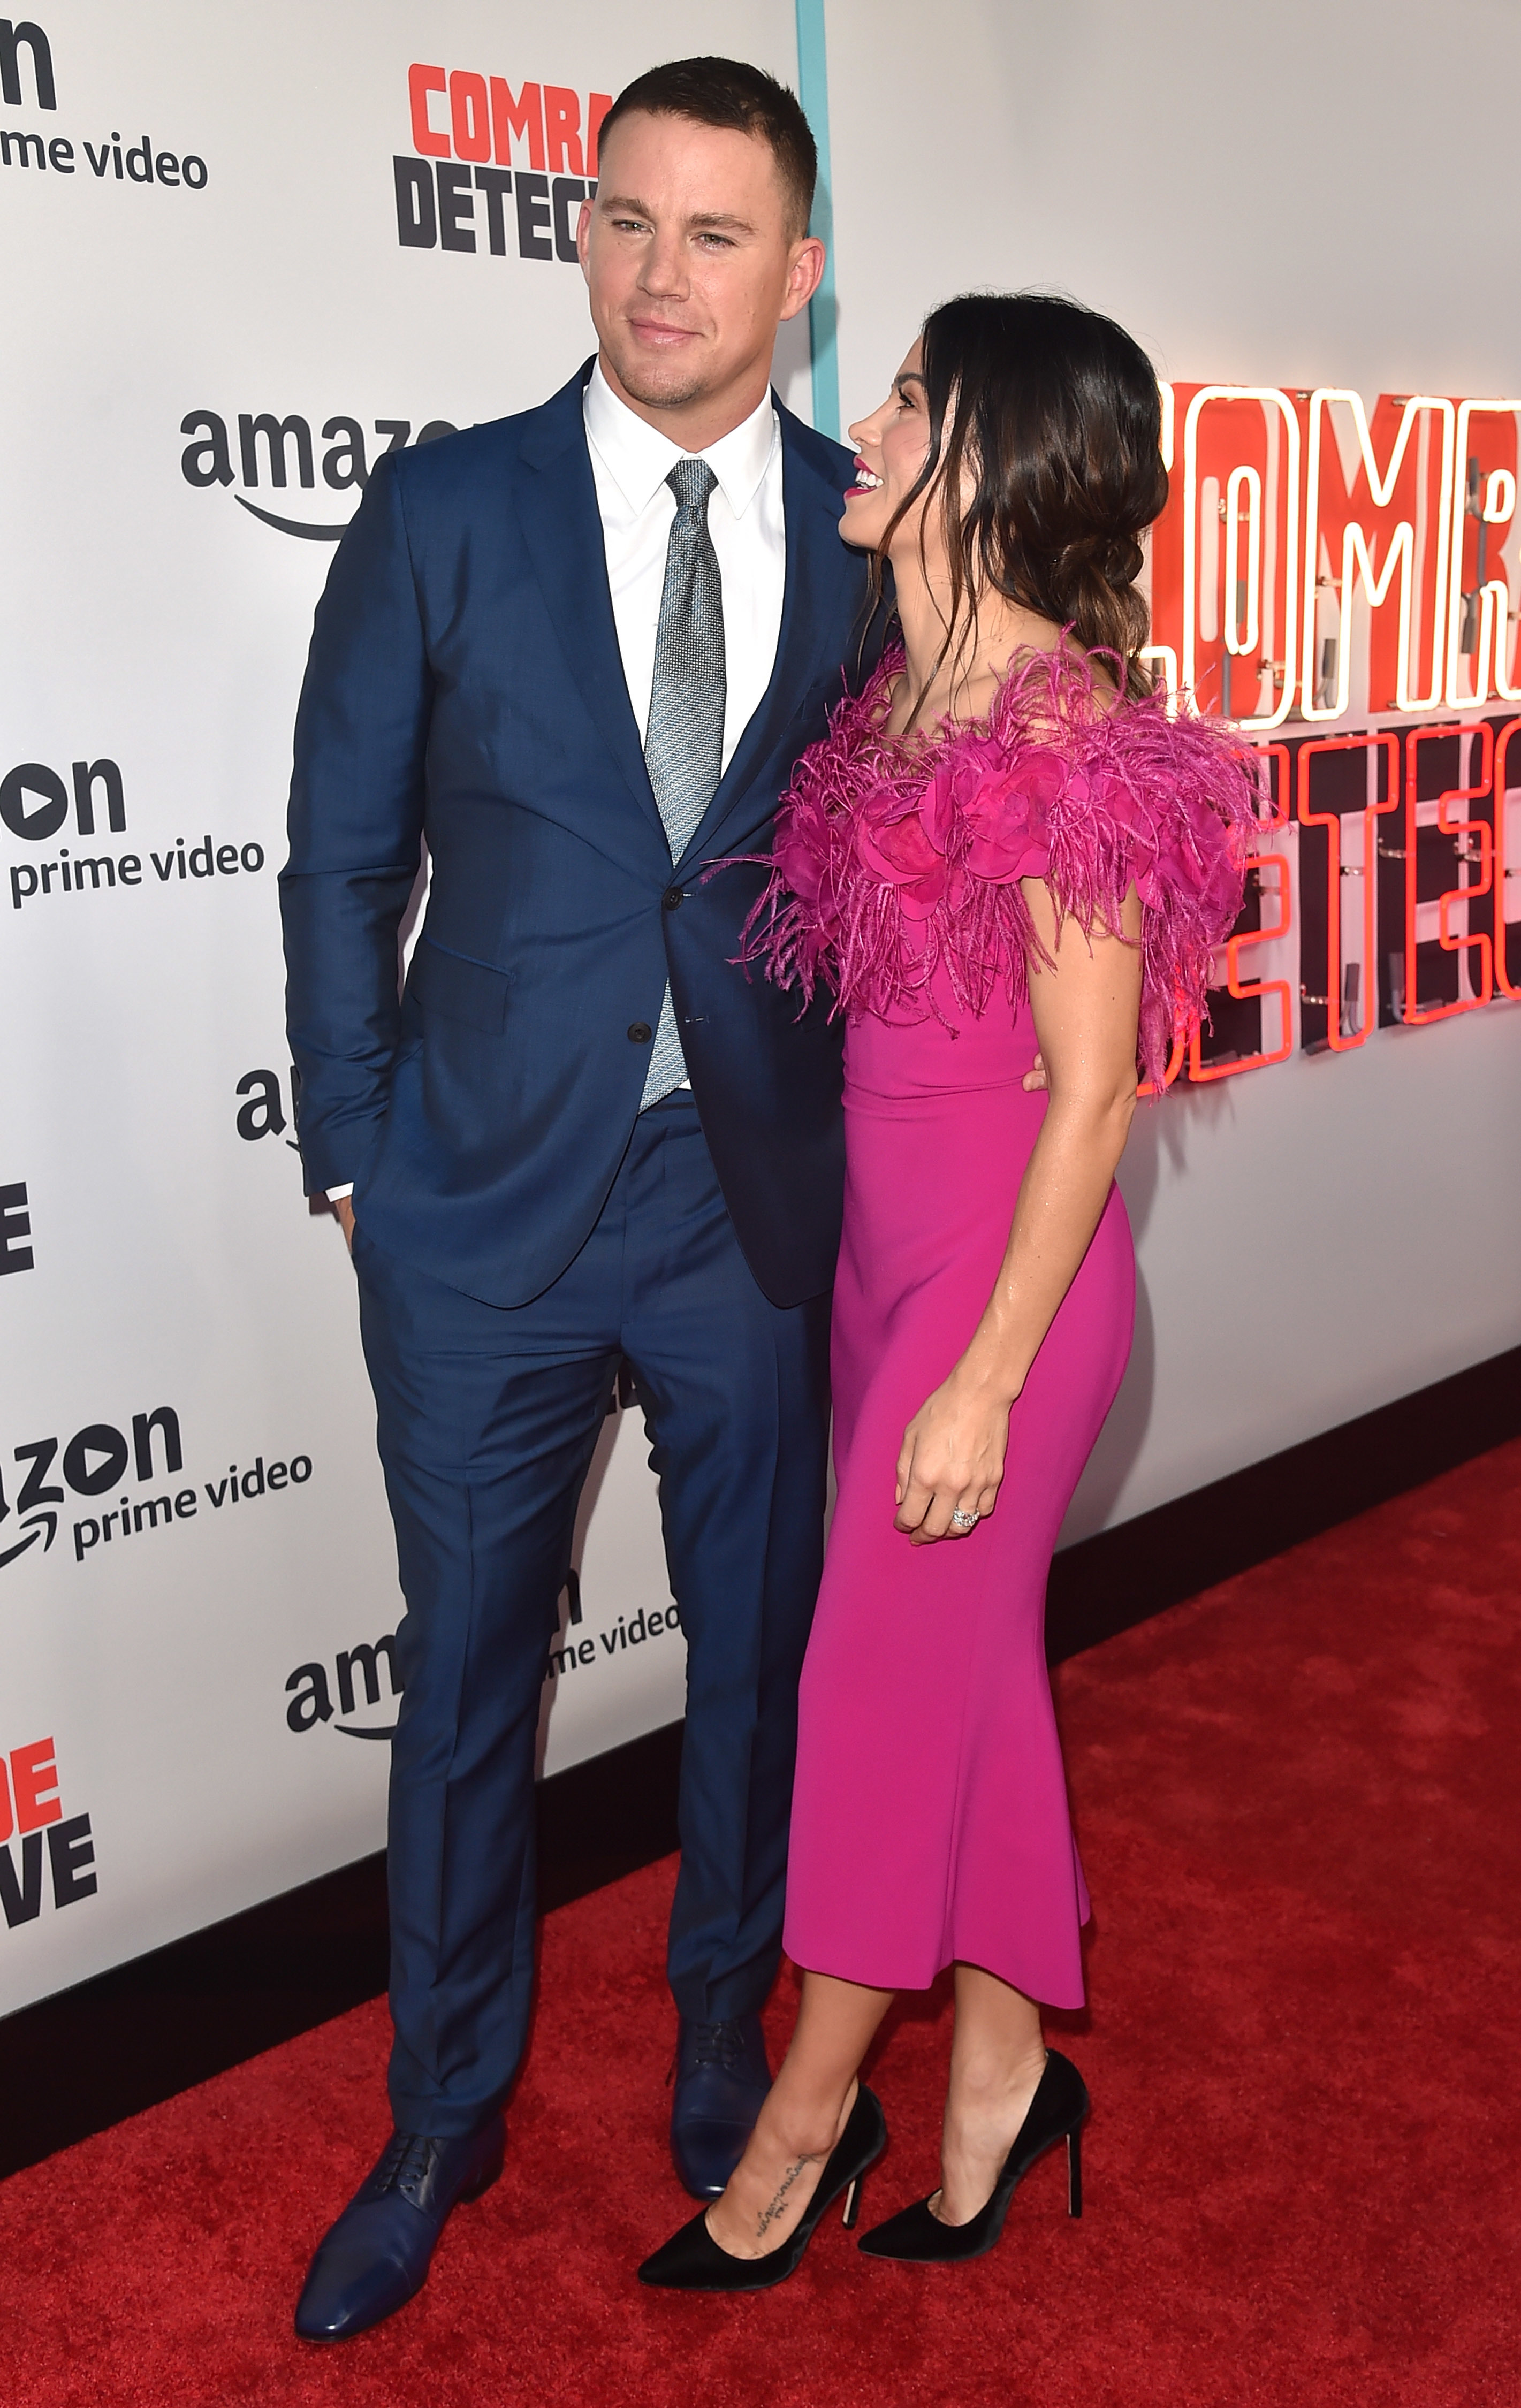 """Channing Tatum and Jenna Dewan Tatum attend the premiere of Amazon's """"Comrade Detective"""" at ArcLight Hollywood in Hollywood  on Aug. 3, 2017."""